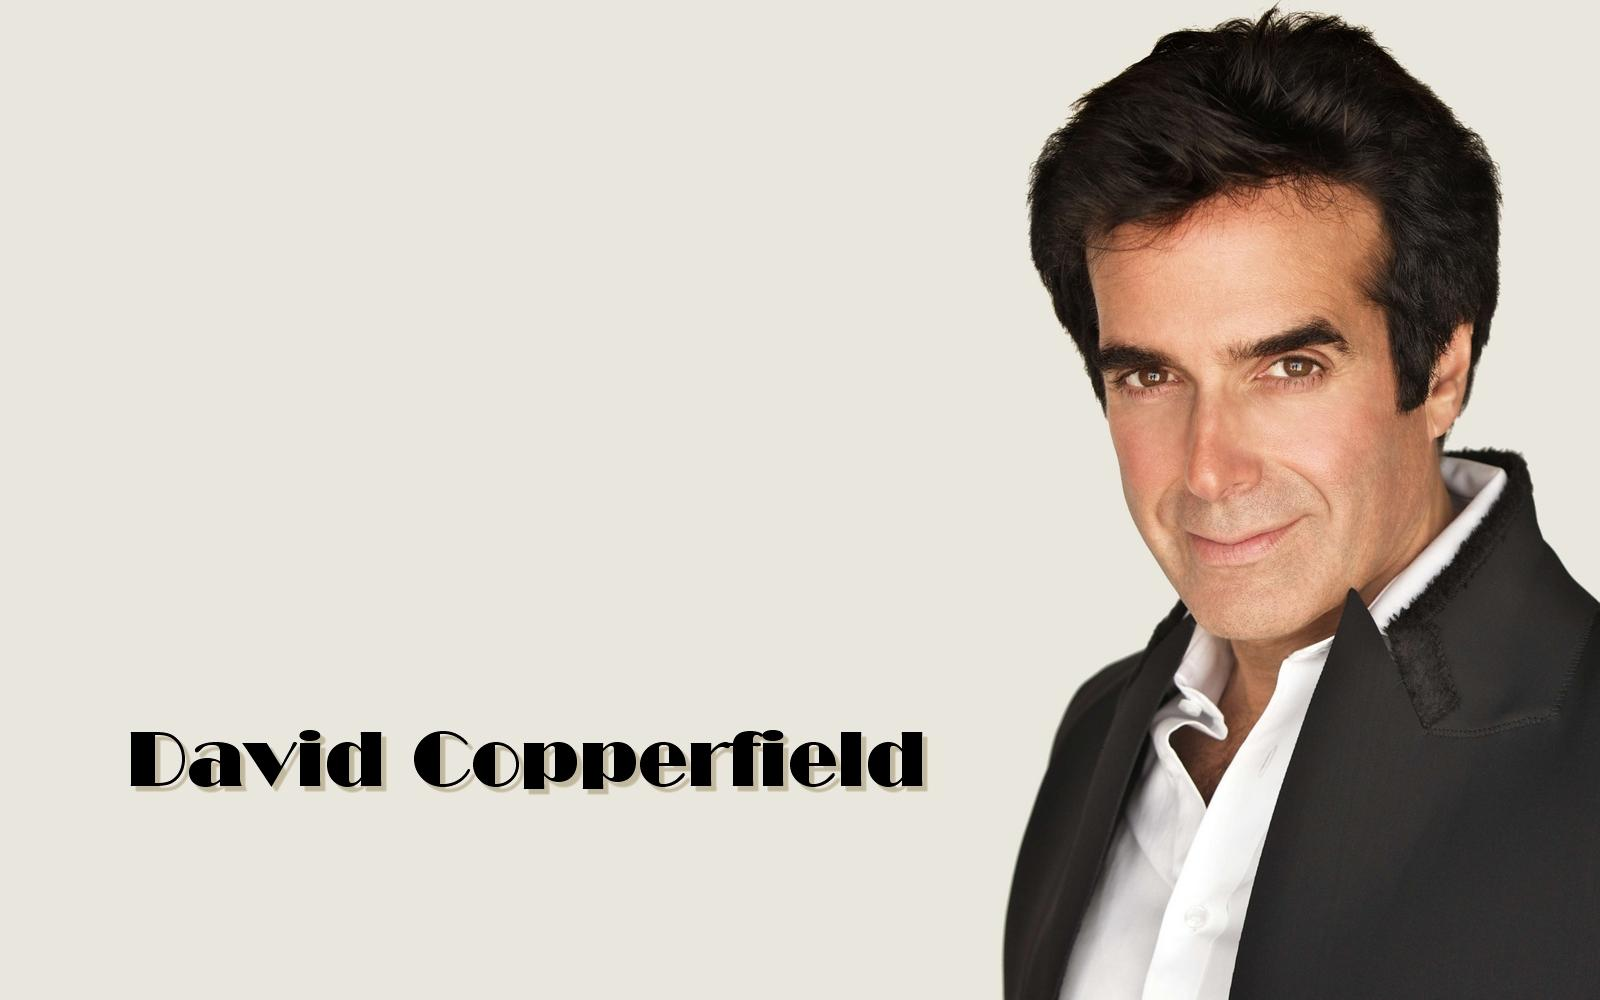 These illusions have made David Copperfield a mainstay on the magic circuit and you.